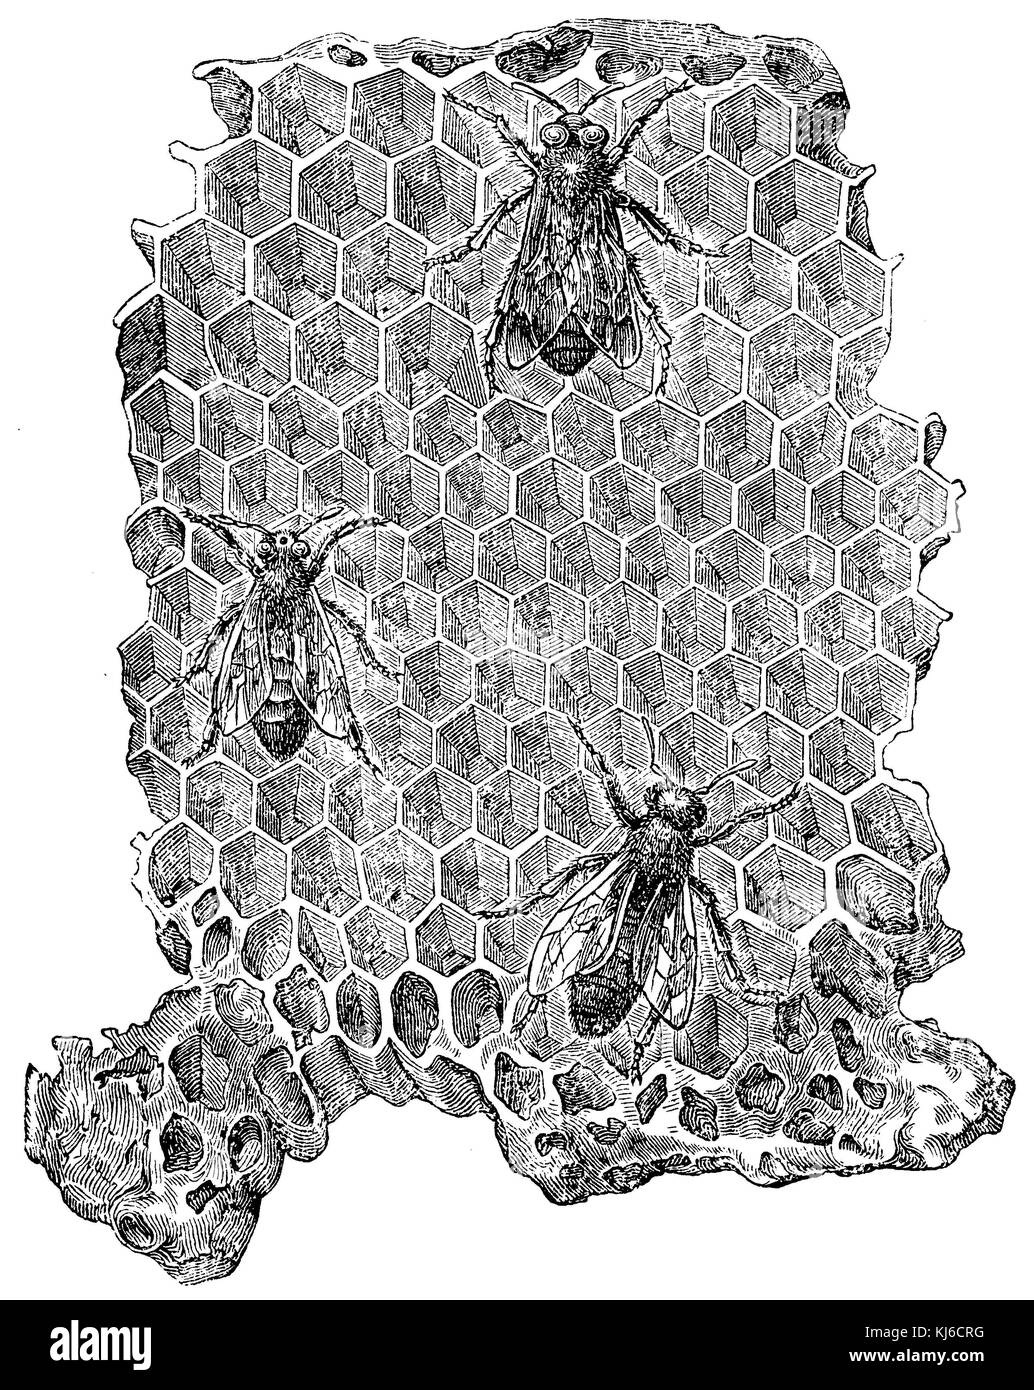 Honeybee: drone cells with a drone, center worker cells with worker bee, queen with two weighing Weisel (Honigbiene: Stock Photo